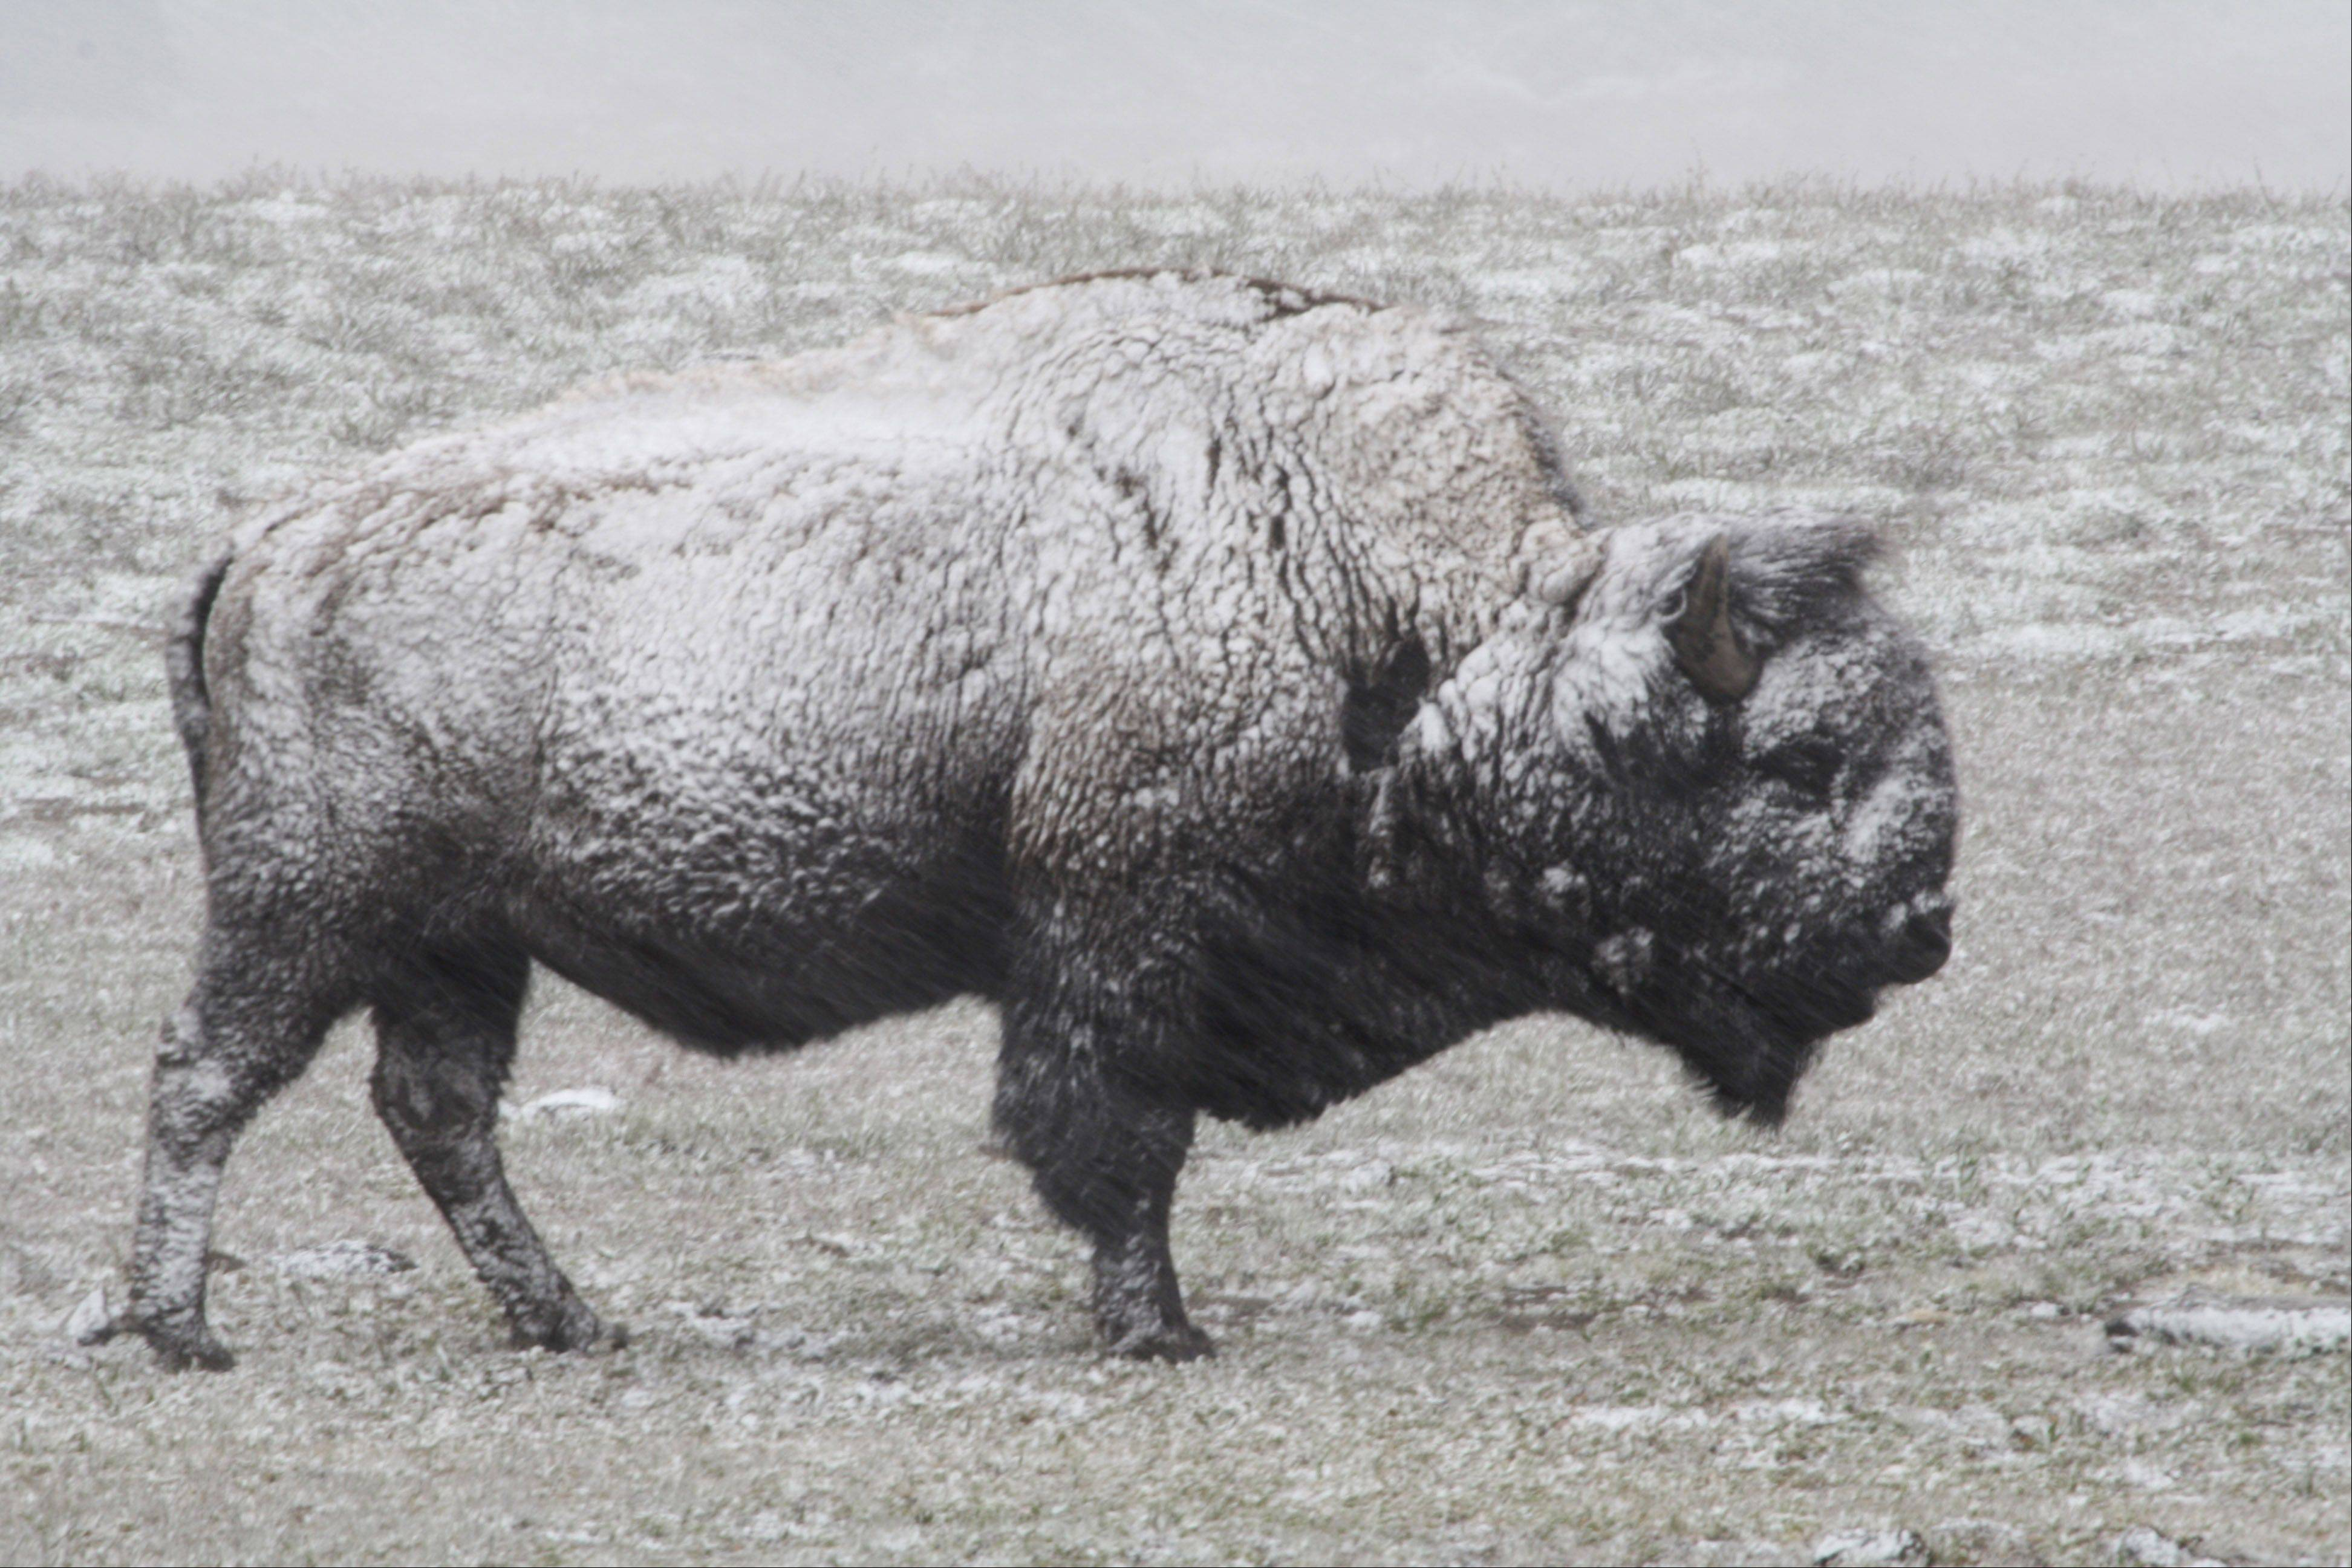 A bison braves a Spring snowstorm last week in Yellowstone National Park, Wyoming.